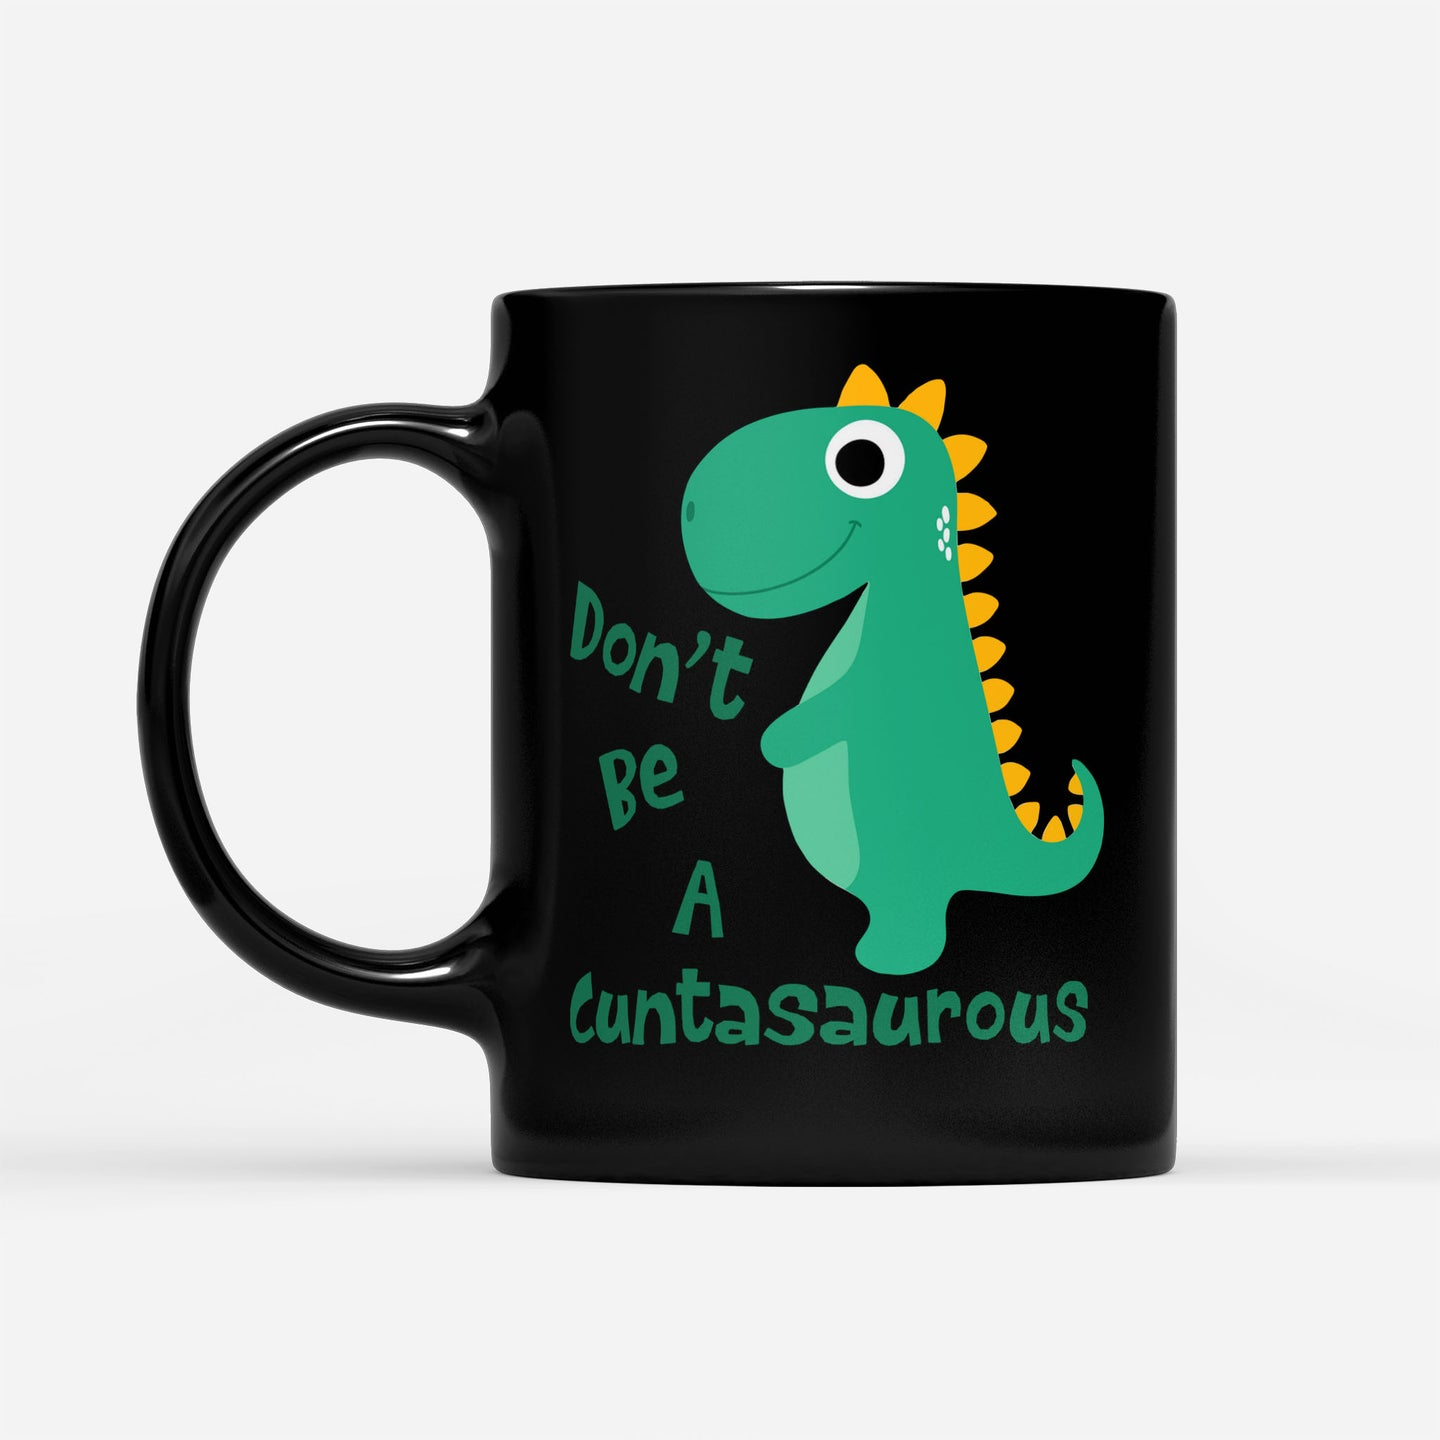 Funny Adults Words Printed Mug Don't Be A Cuntasaurous T Rex Themed Novelty Gift - Black Mug Drinkware 11oz